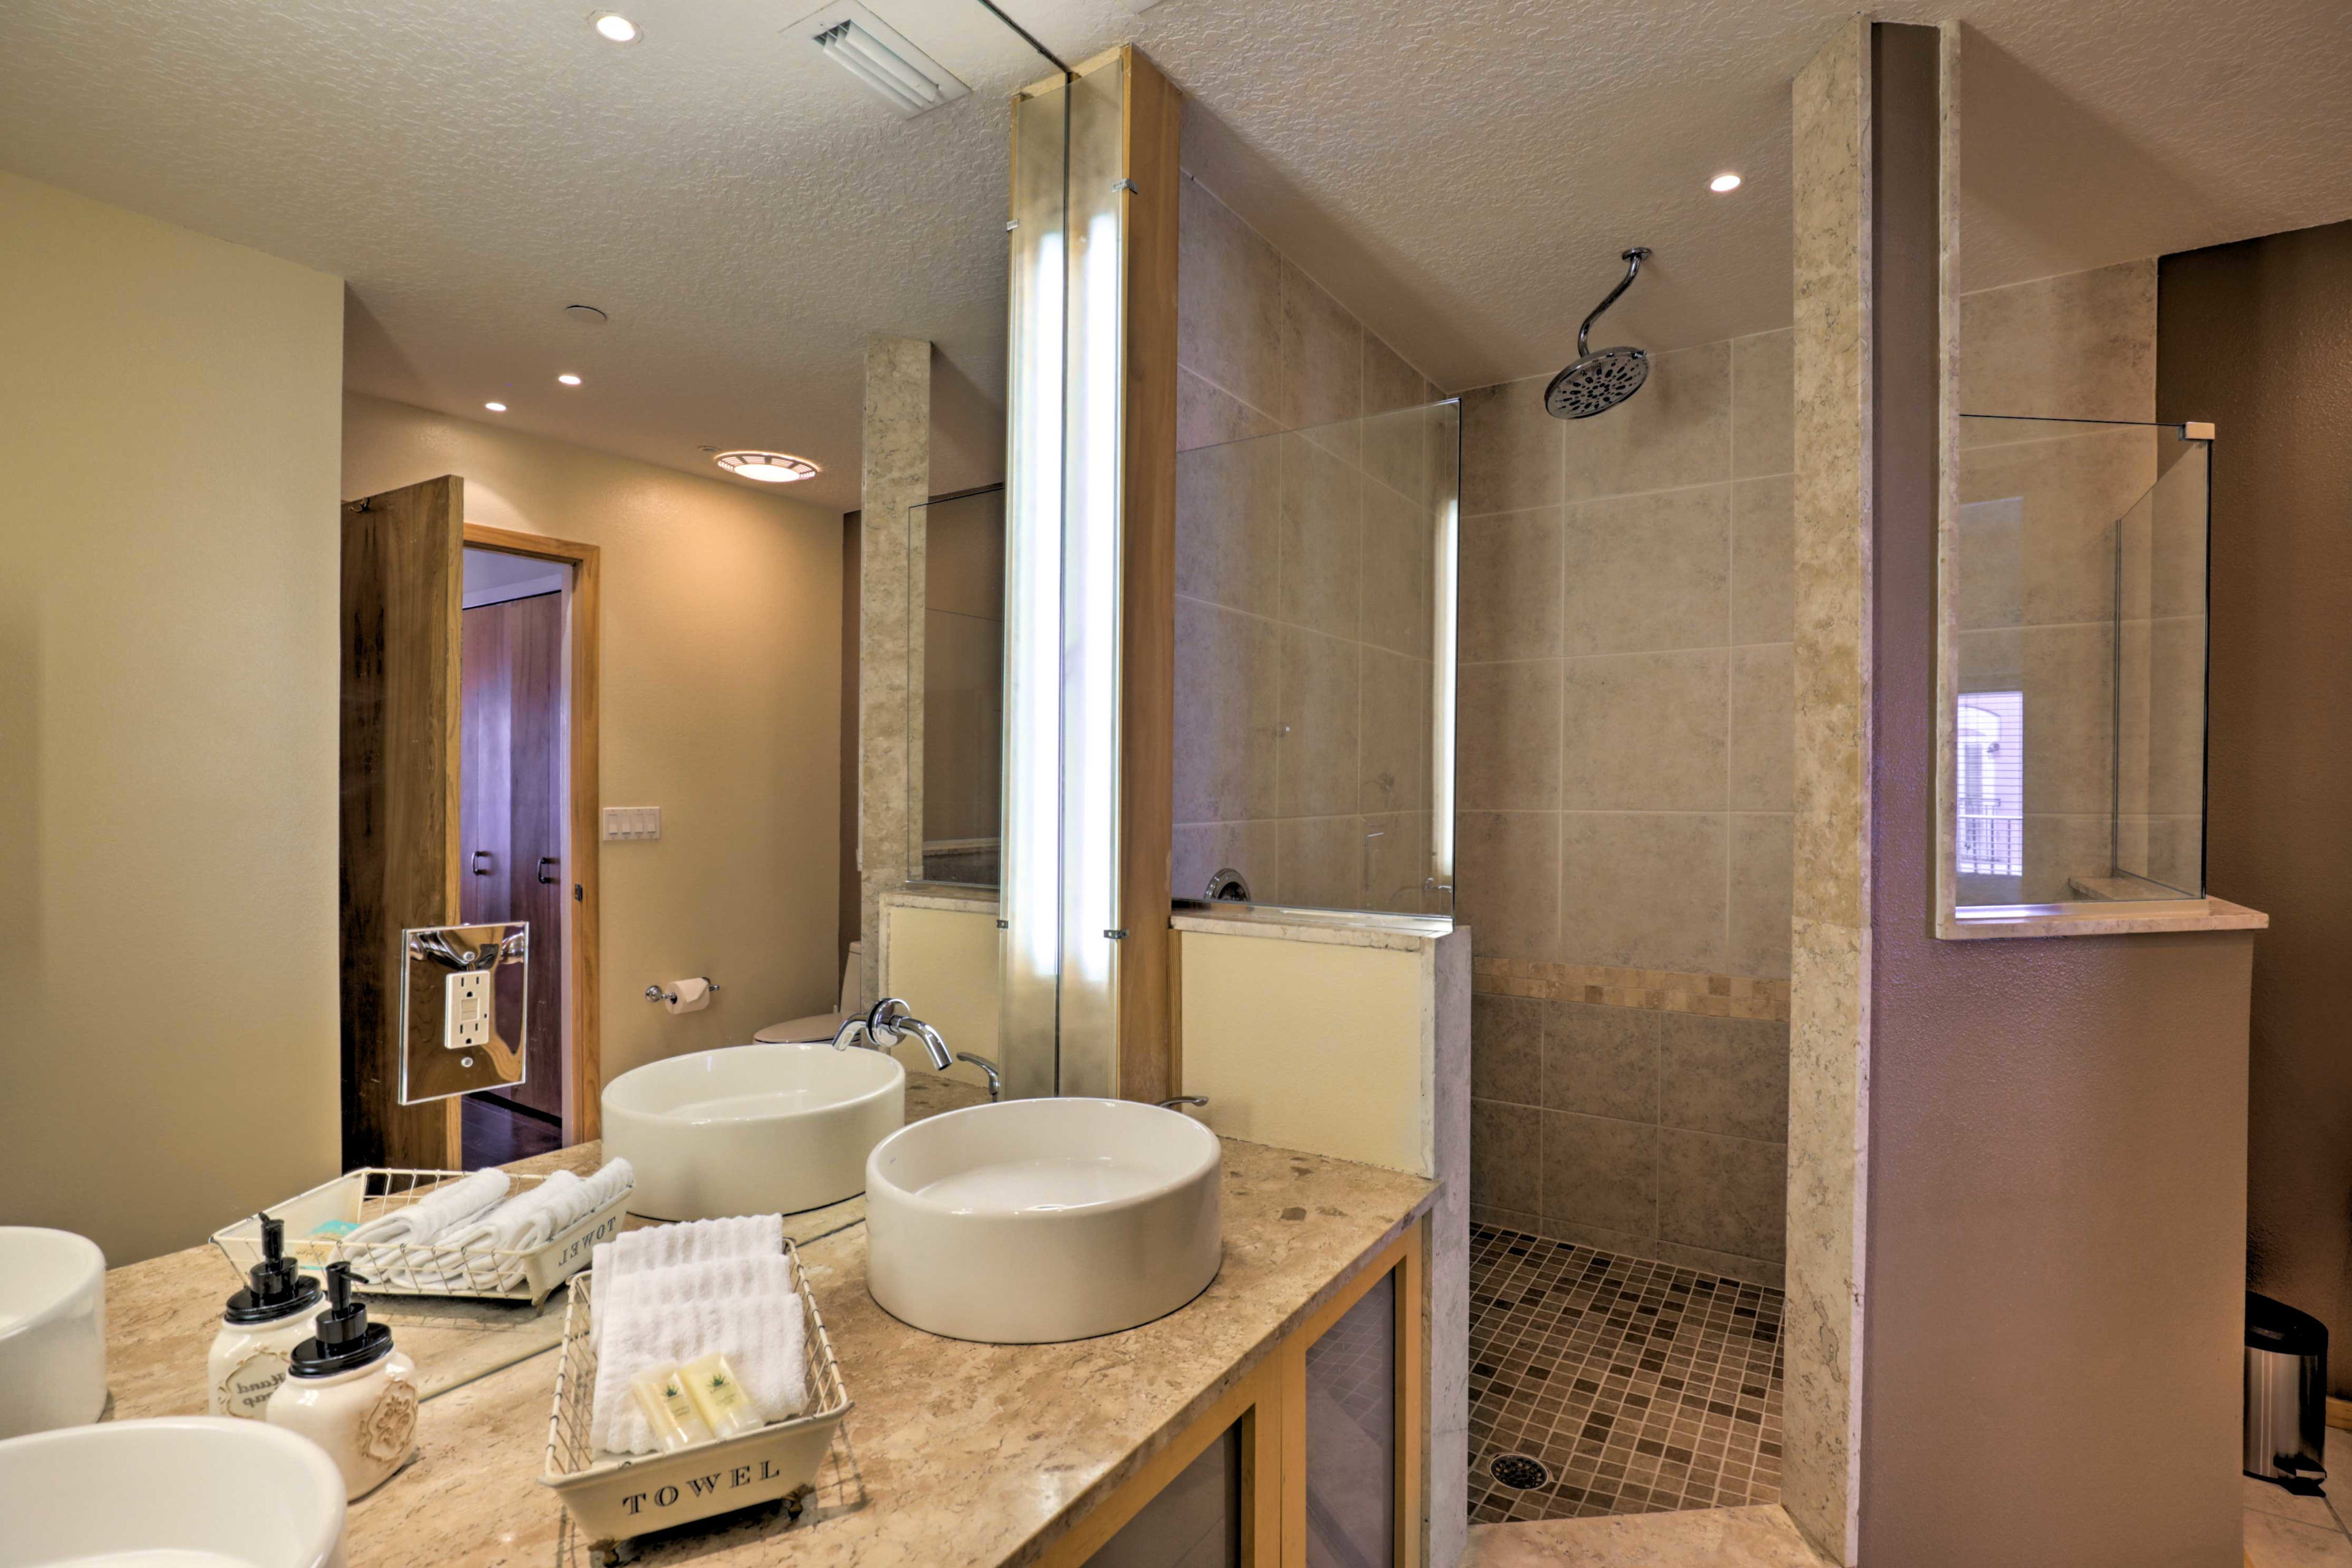 Take a cleansing rinse in the walk-in shower.